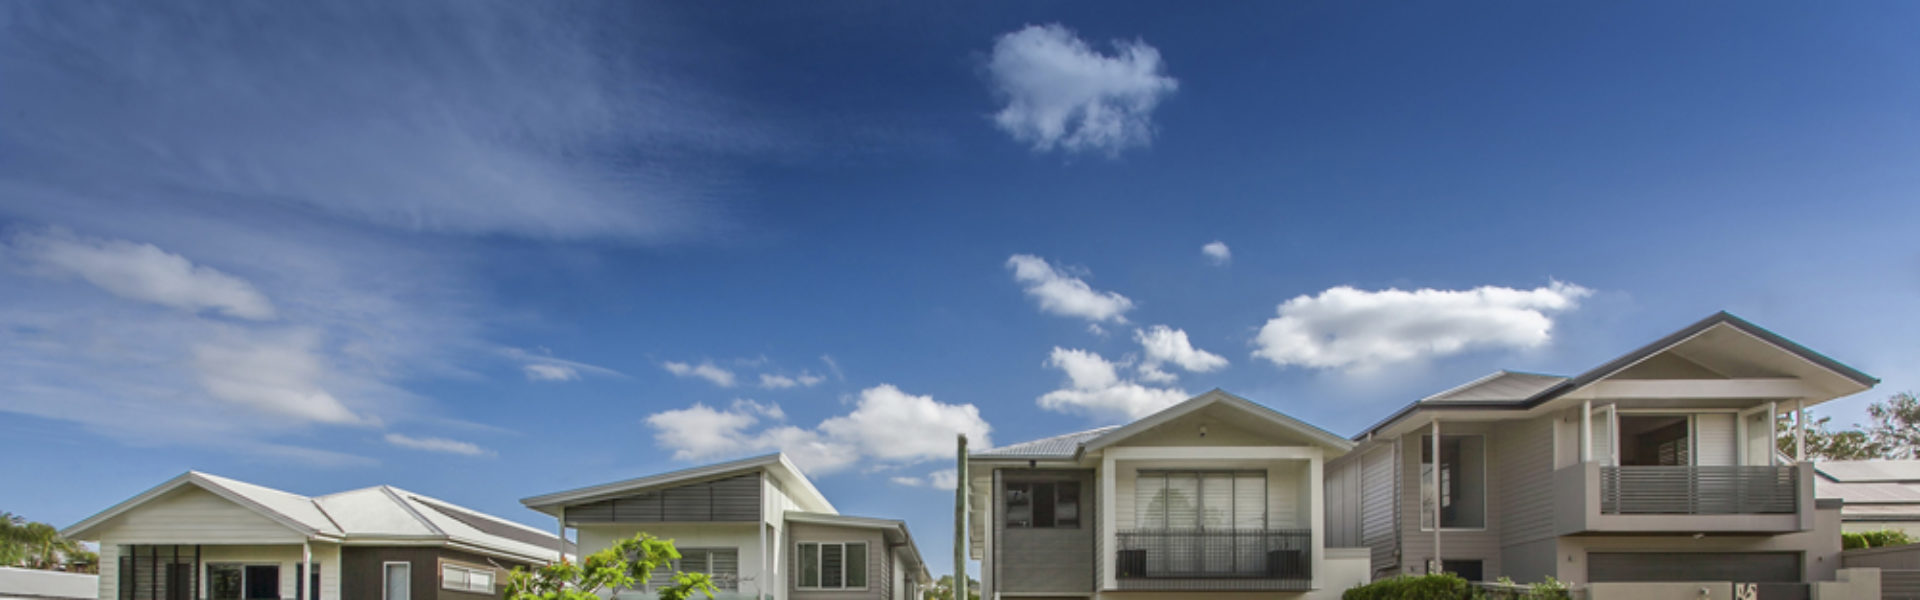 Kalka - Narrow and Small Lot Homes Brisbane